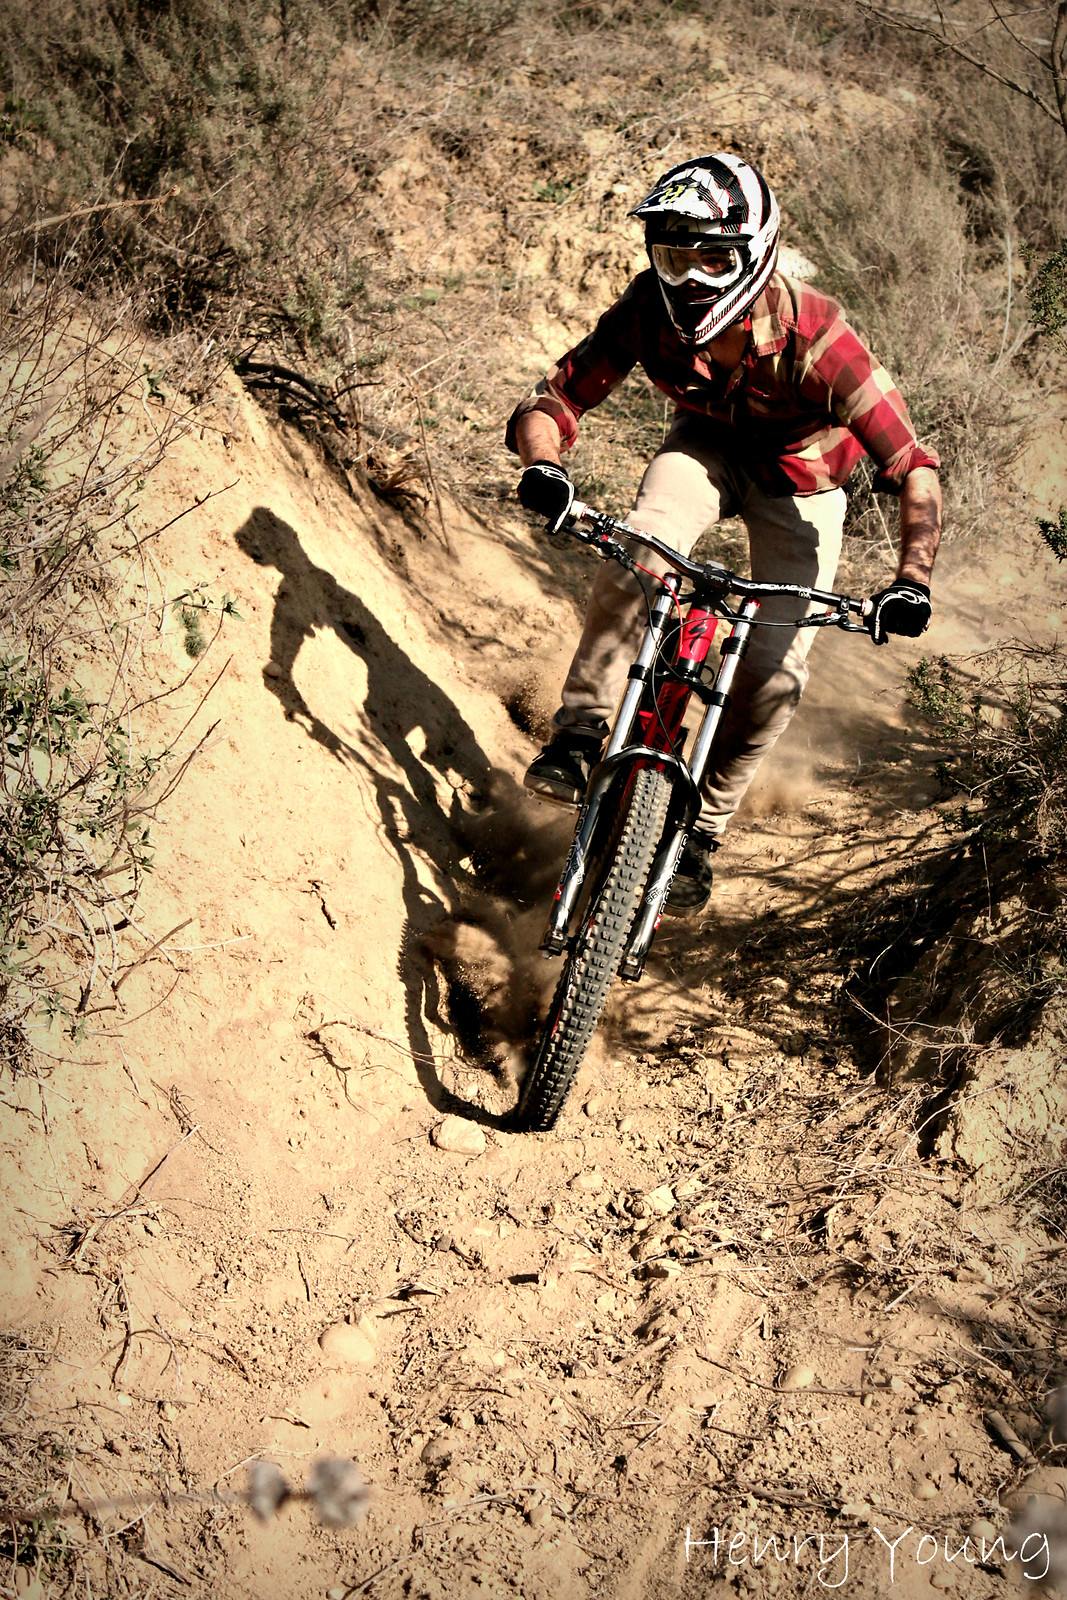 12-31-11 029 - Henry_Young - Mountain Biking Pictures - Vital MTB